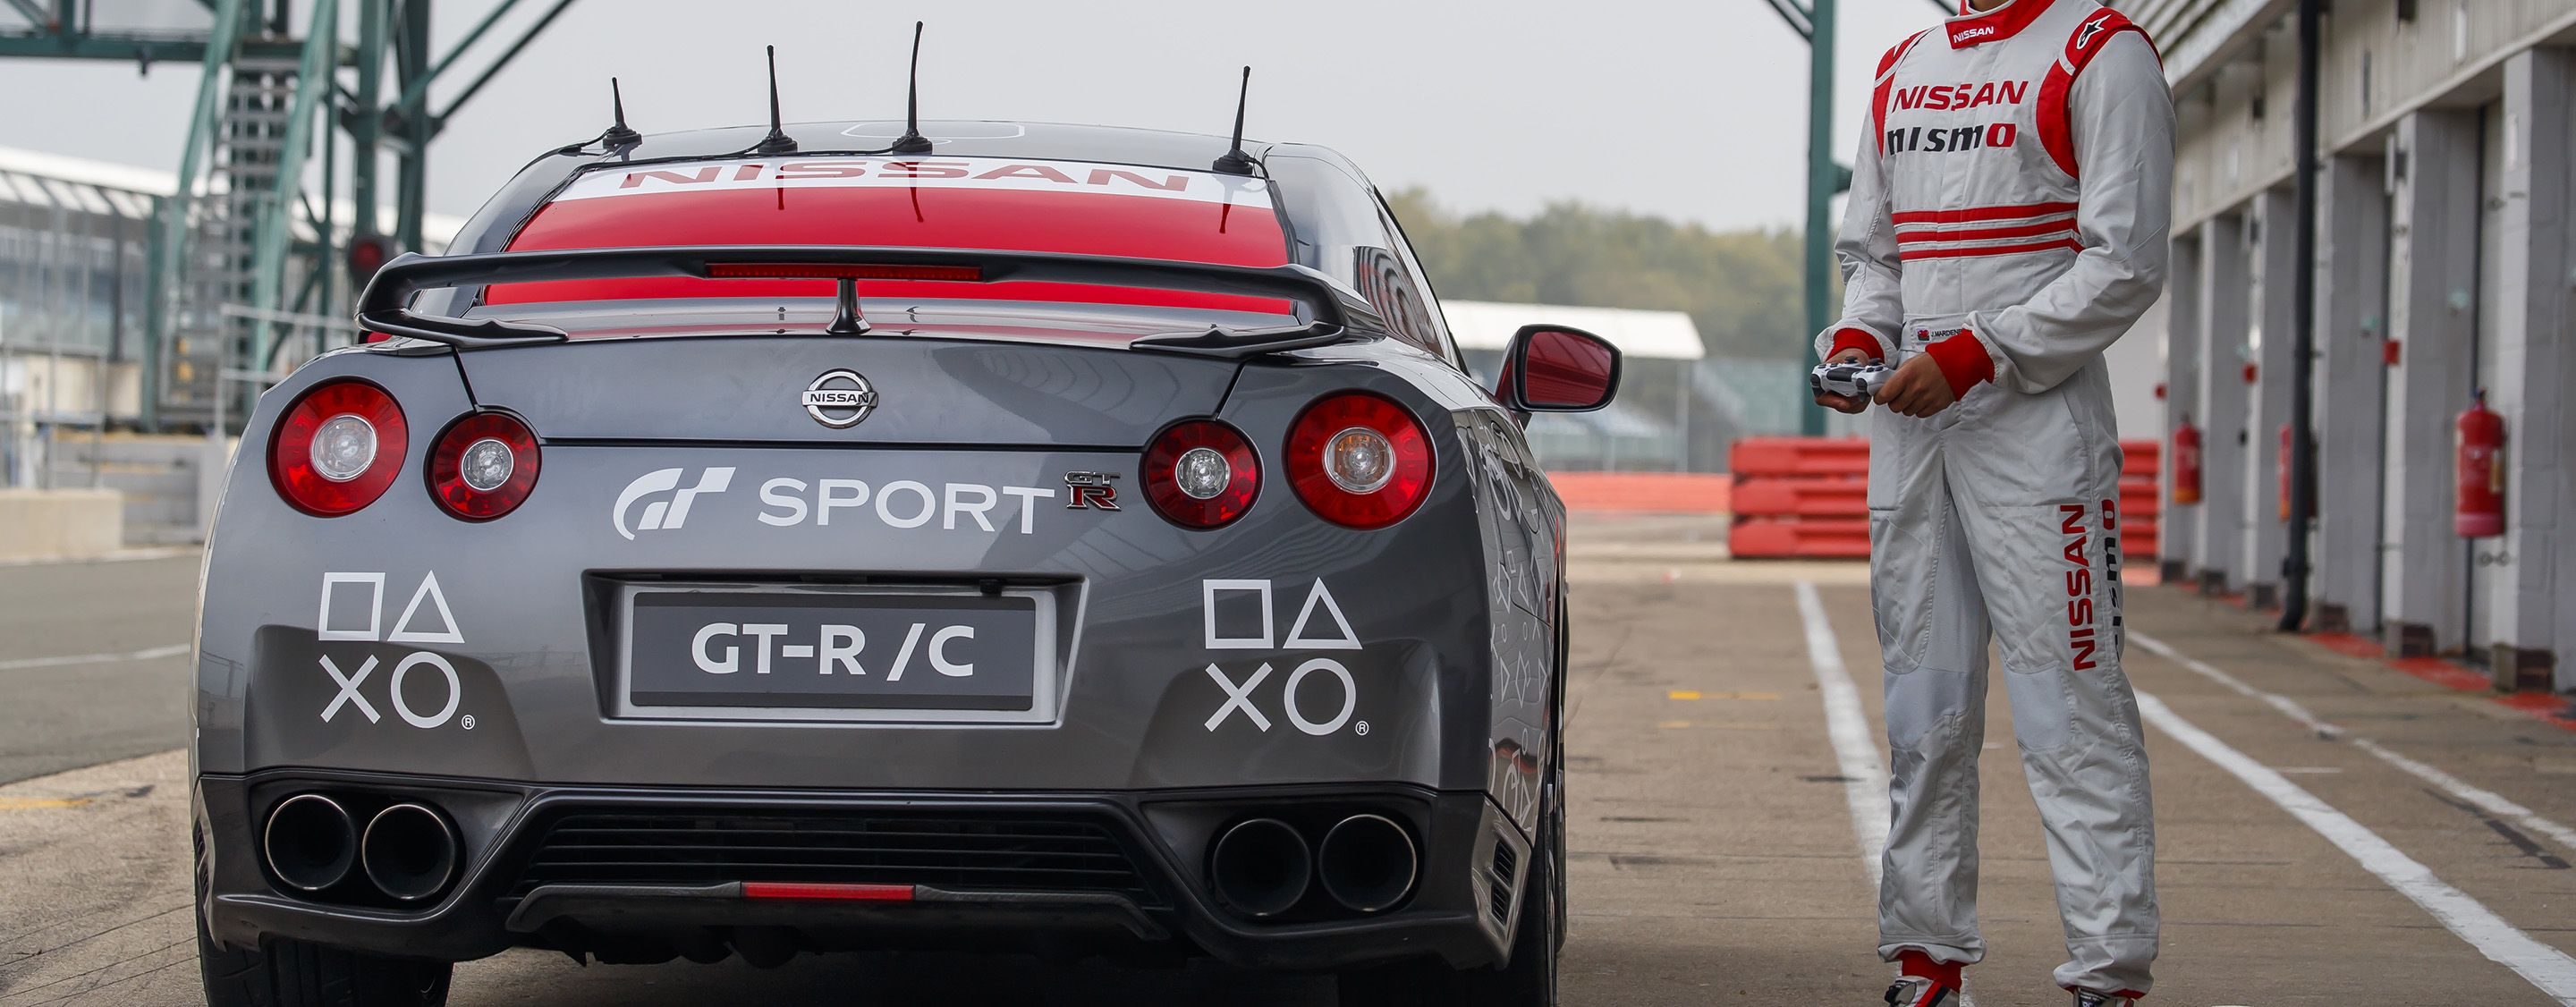 TrackWorthy - Nissan GT-R-C operated by DualShock 4 controller and Jann Mardenborough (3)